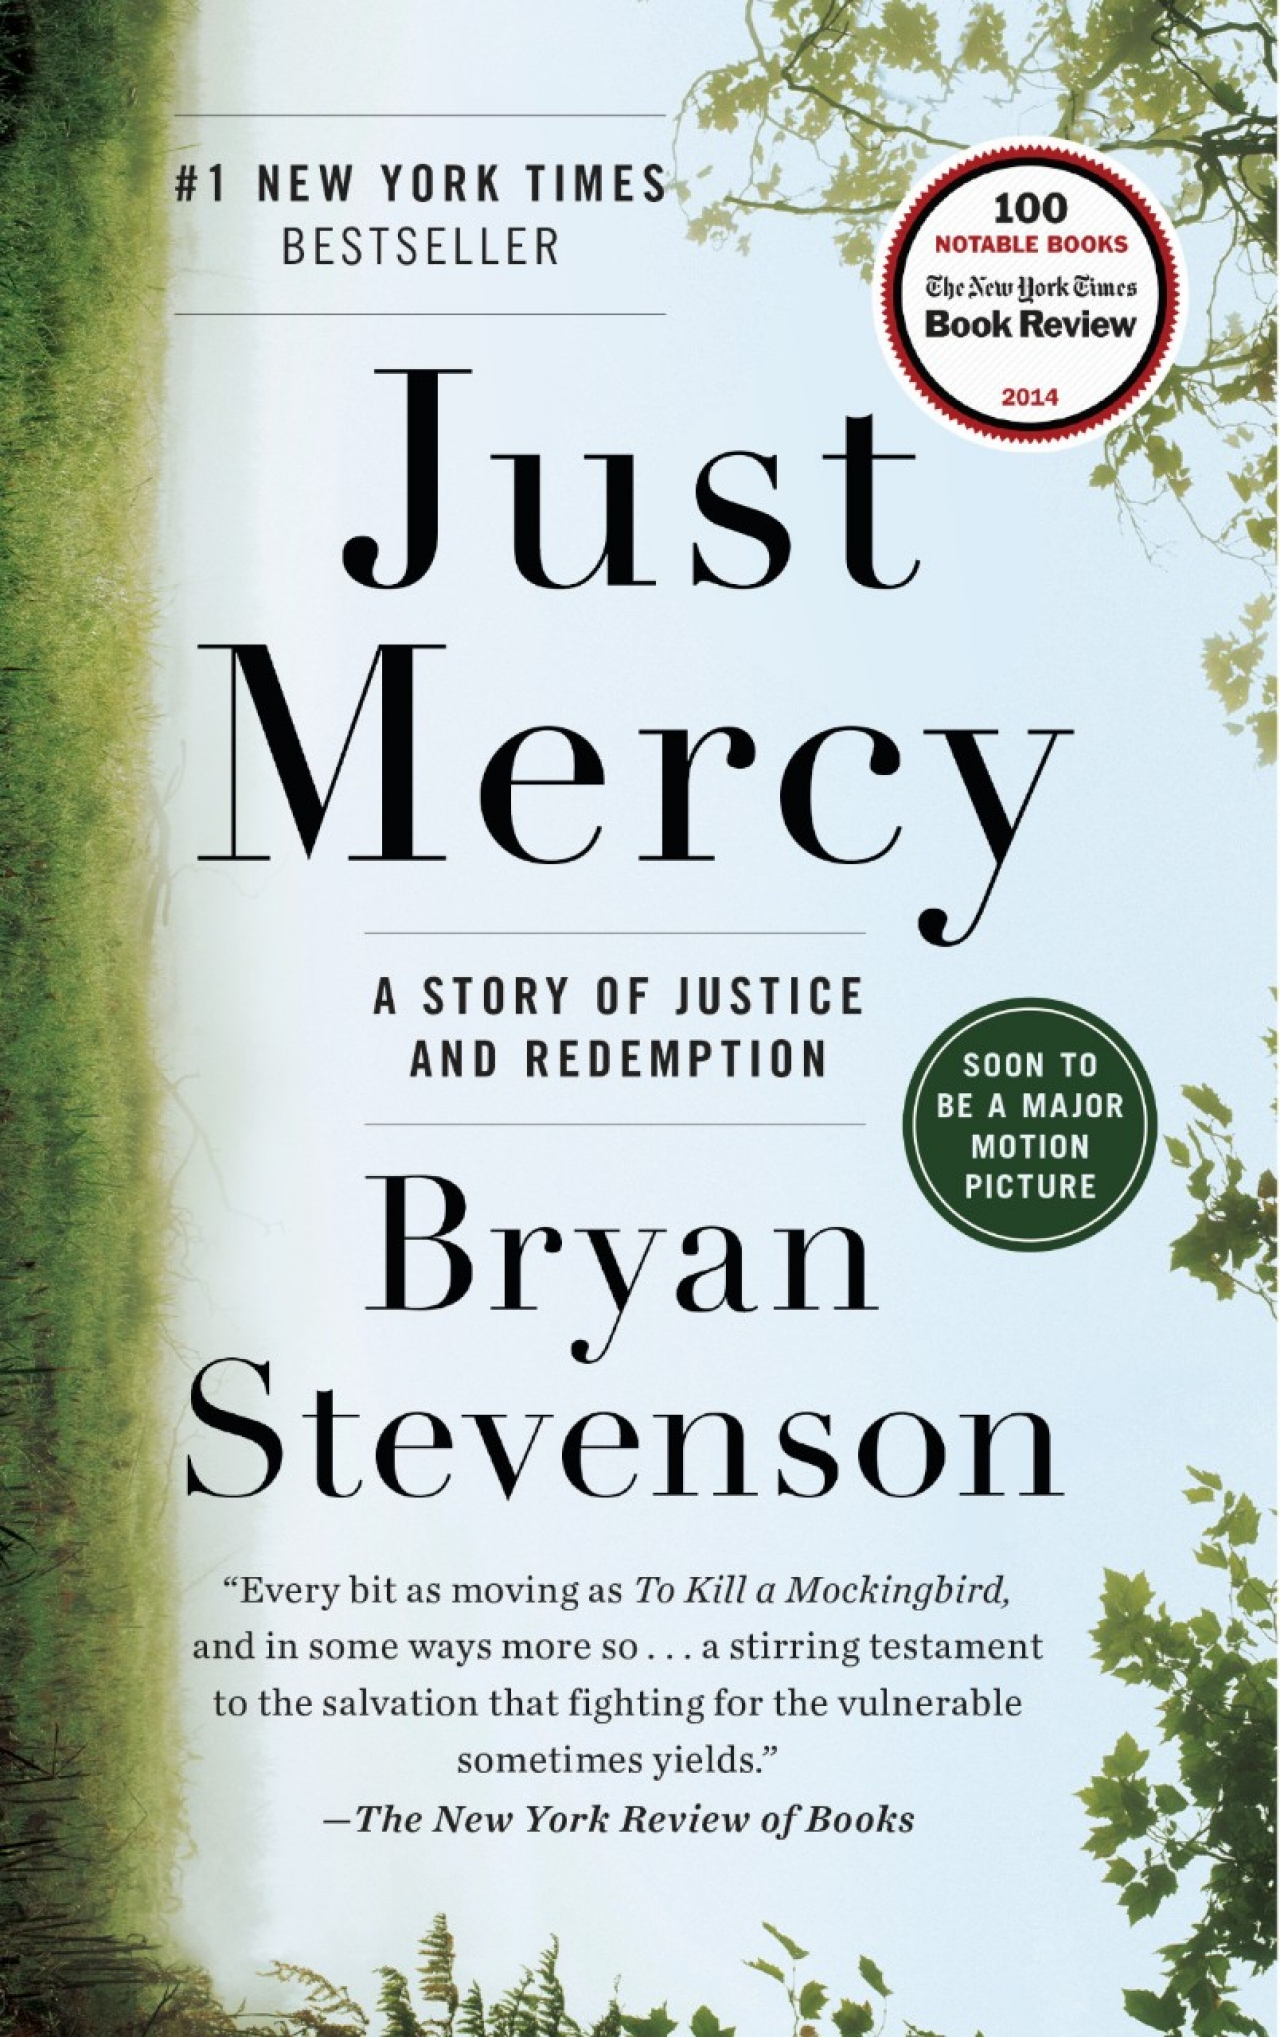 Just Mercy by Bryan Stevenson book cover, Spiegel and Grau 2014.